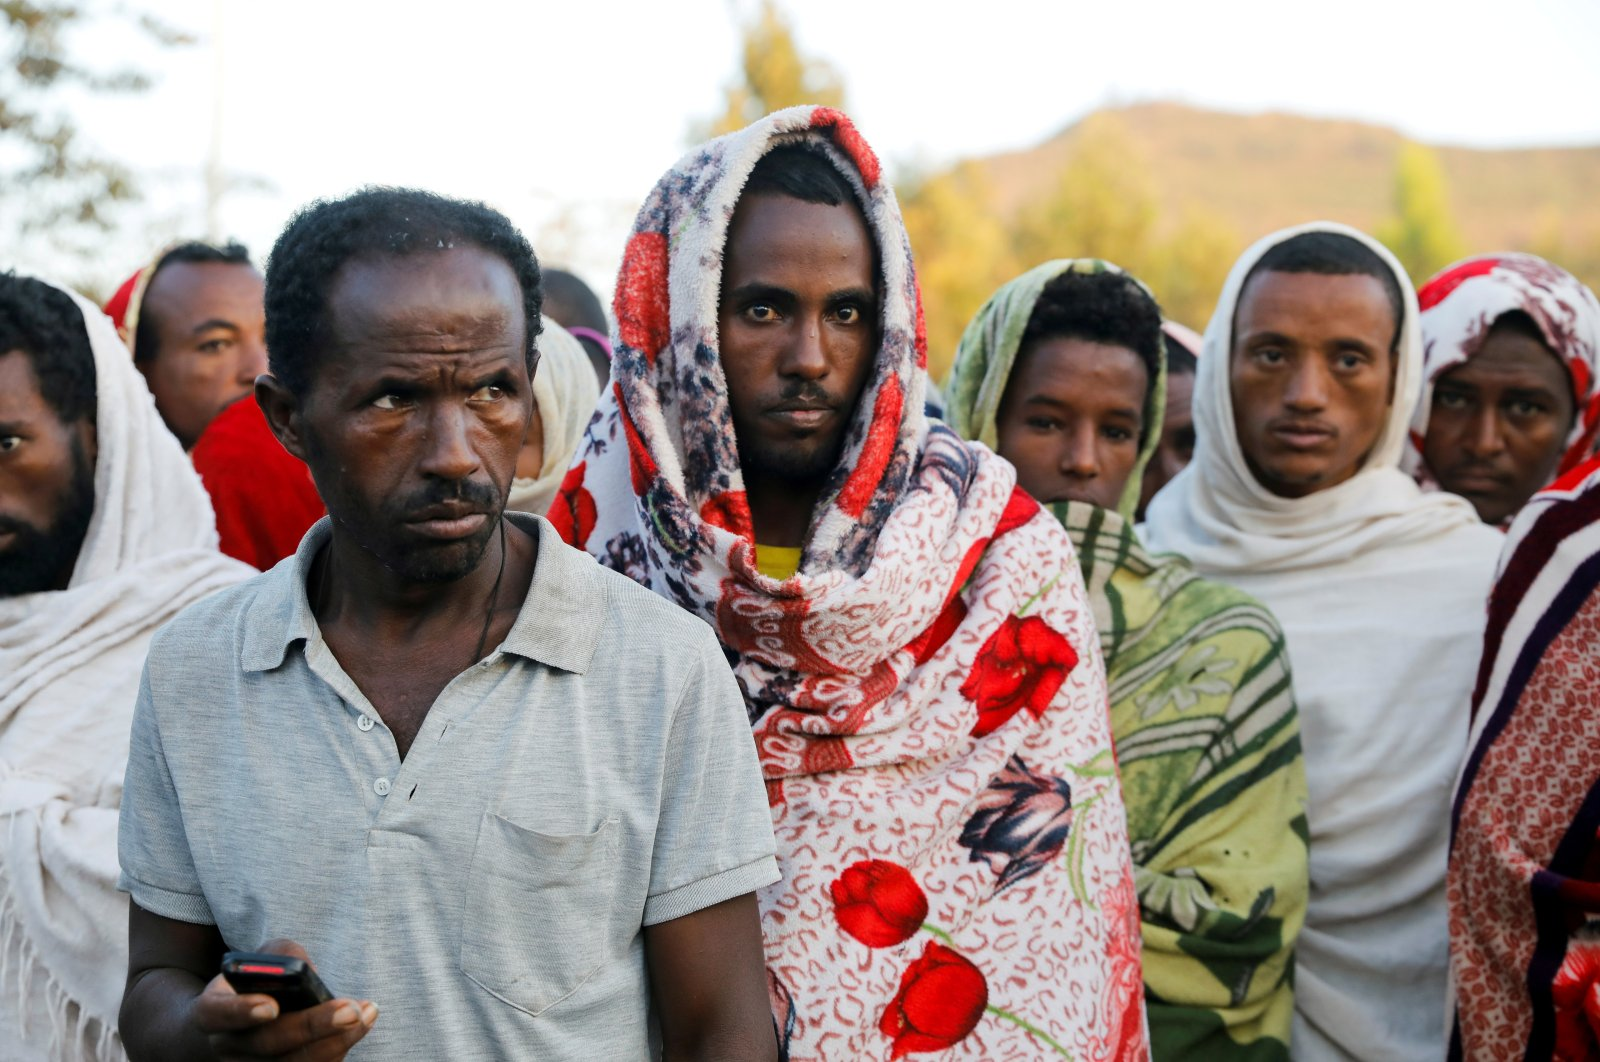 Men stand in line to receive food donations, at the Tsehaye primary school, which was turned into a temporary shelter for people displaced by conflict, in the town of Shire, Tigray region, Ethiopia, March 15, 2021. (Reuters Photo)